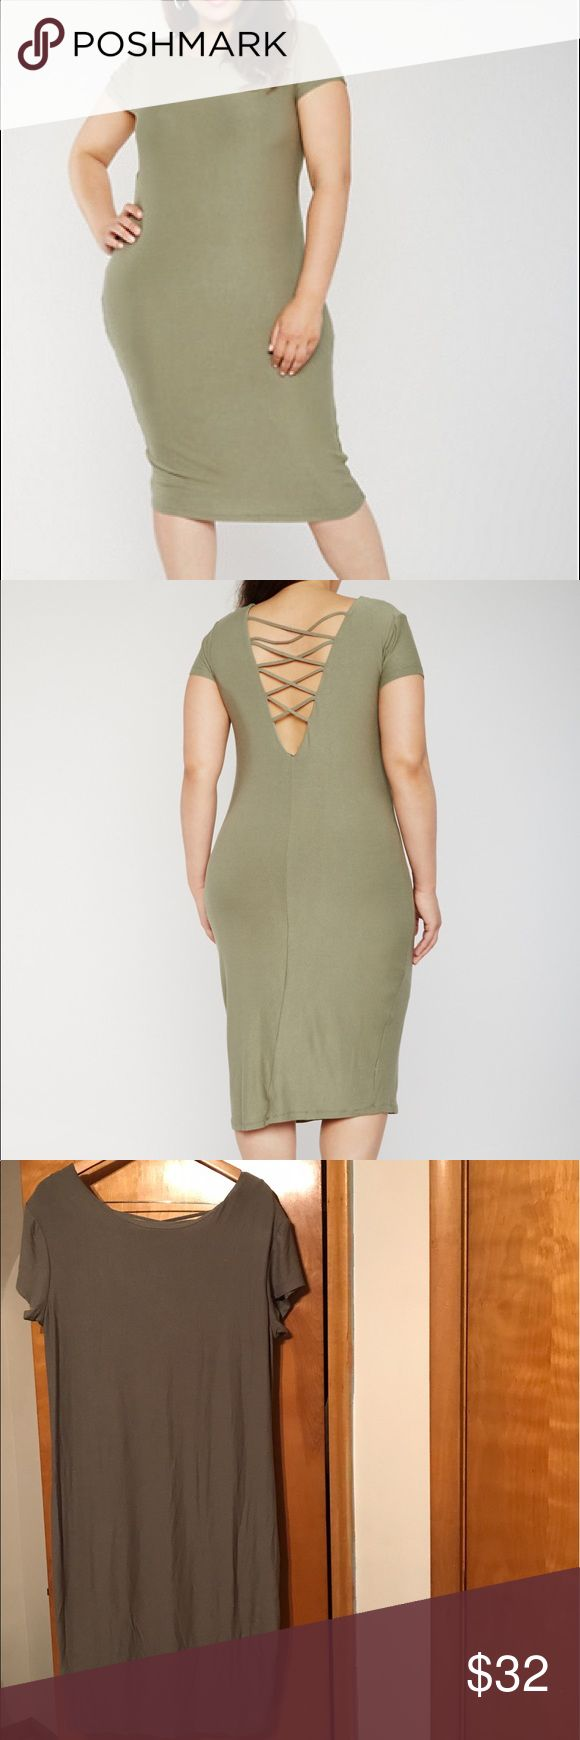 Sexy Army Stretch Dress Super cute casual summer dress in classic army green. Back has cross straps. Never worn before tags still attached. Not long to the floor like a maxi dress so if you're short like me then this is the perfect length for you. Dresses Midi